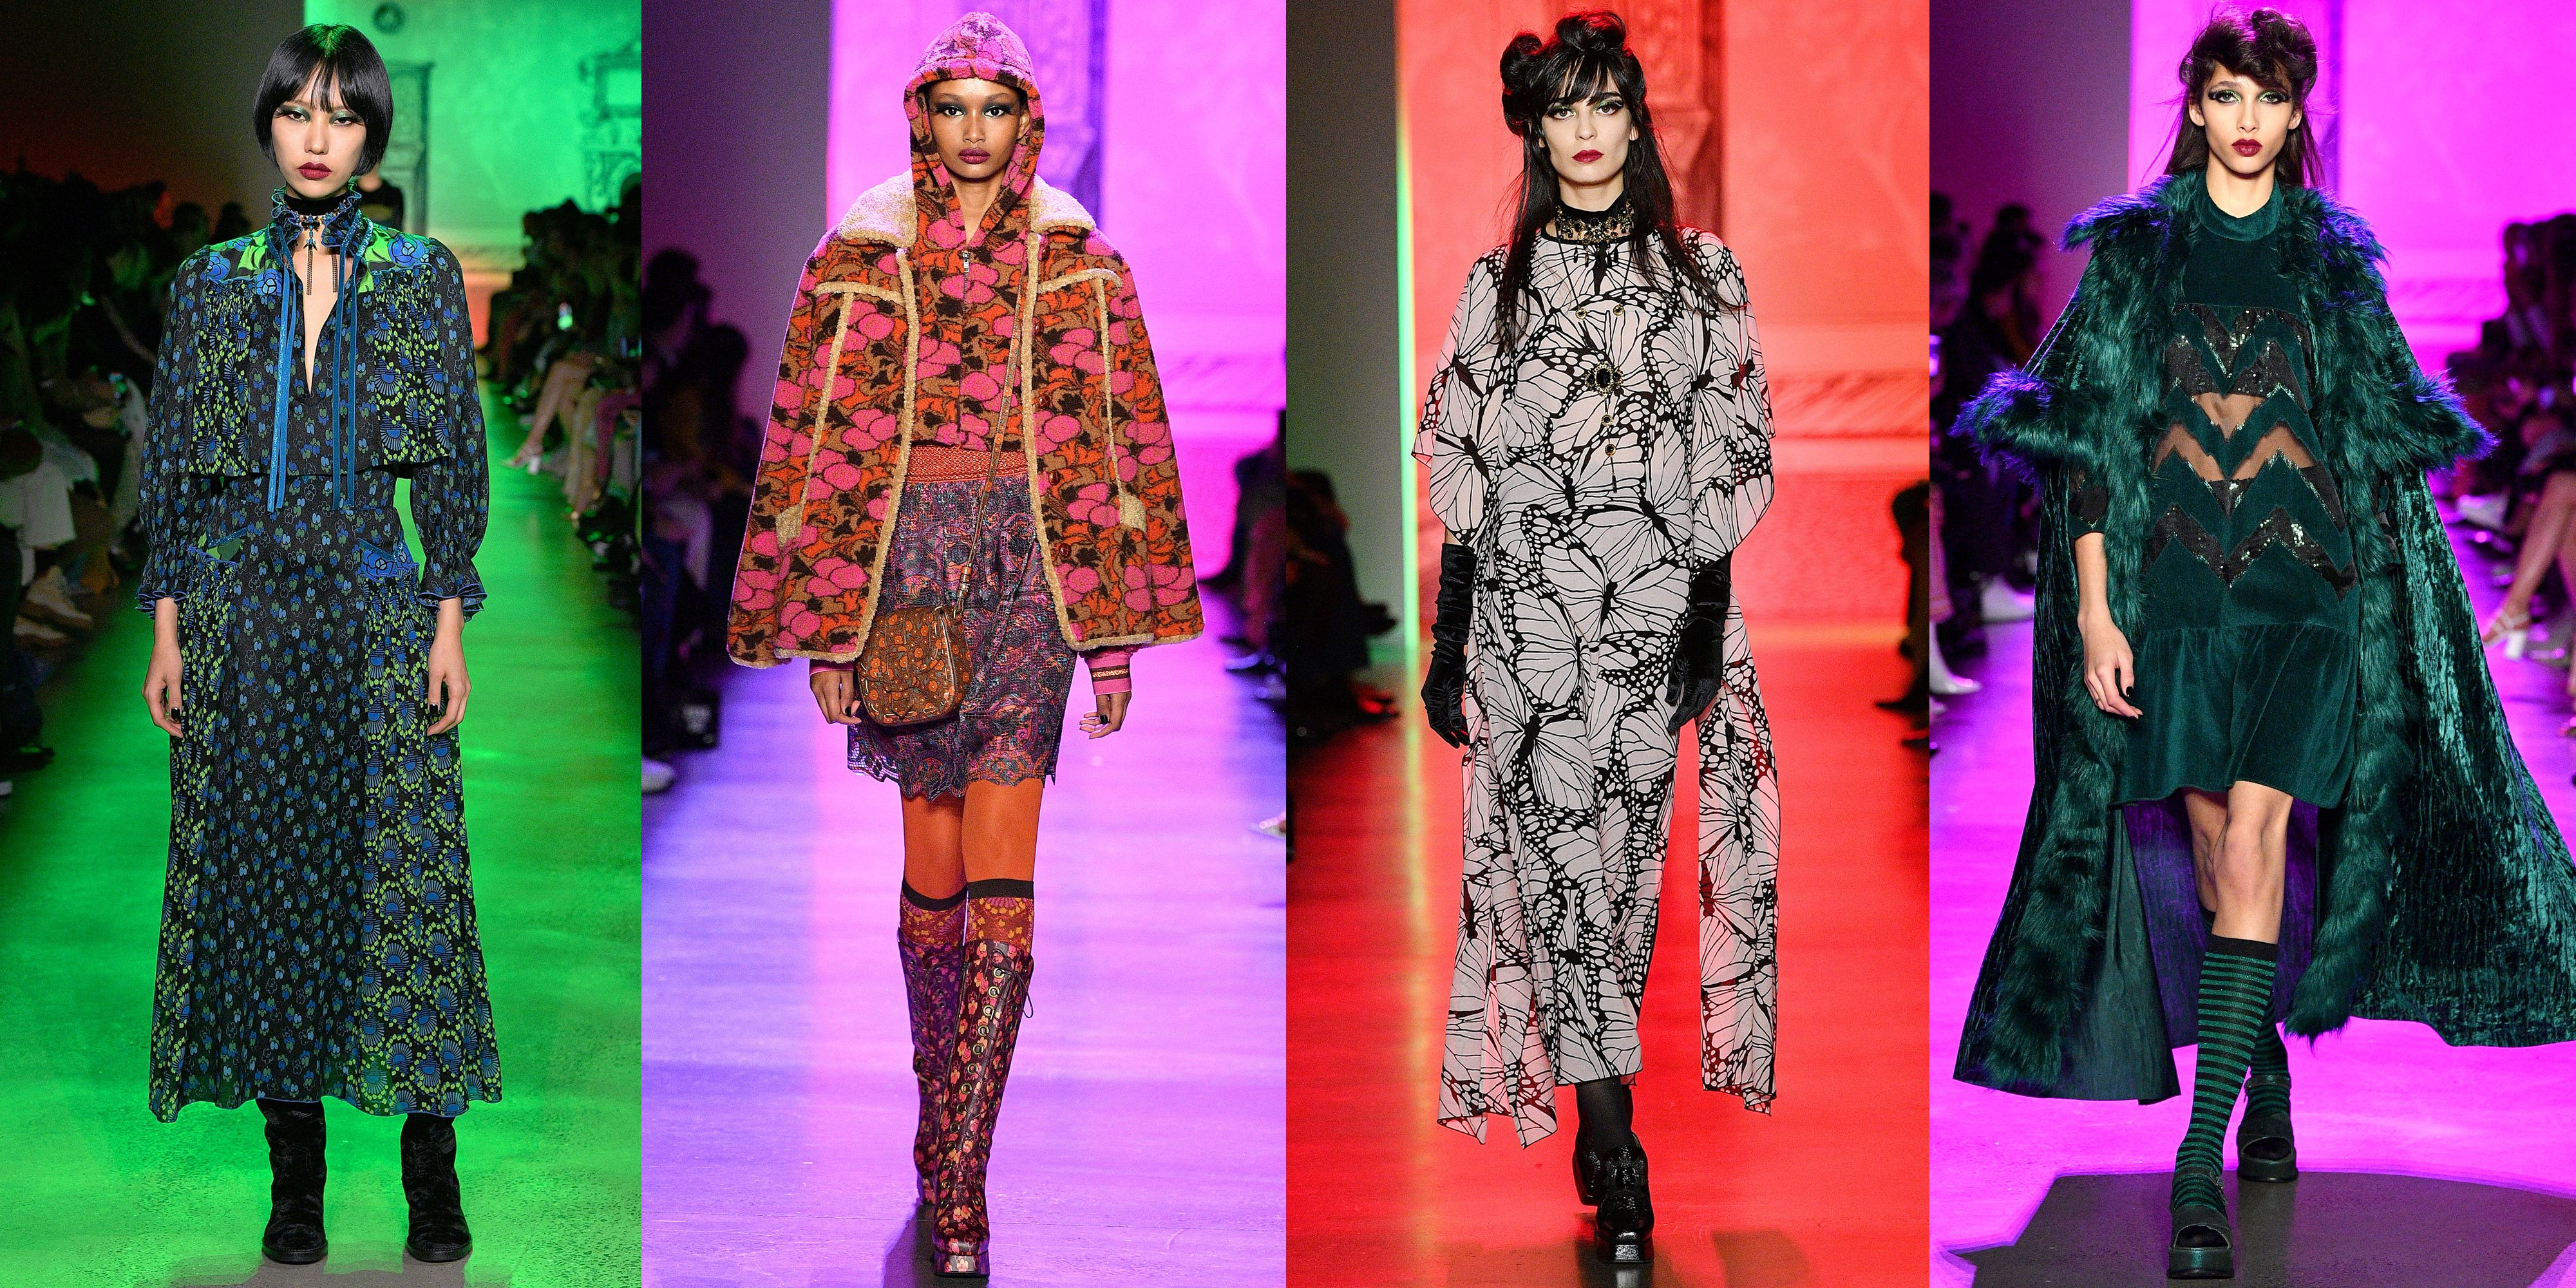 Anna Sui's Fall 2020 Runway Collection Was Full of Dark Romance